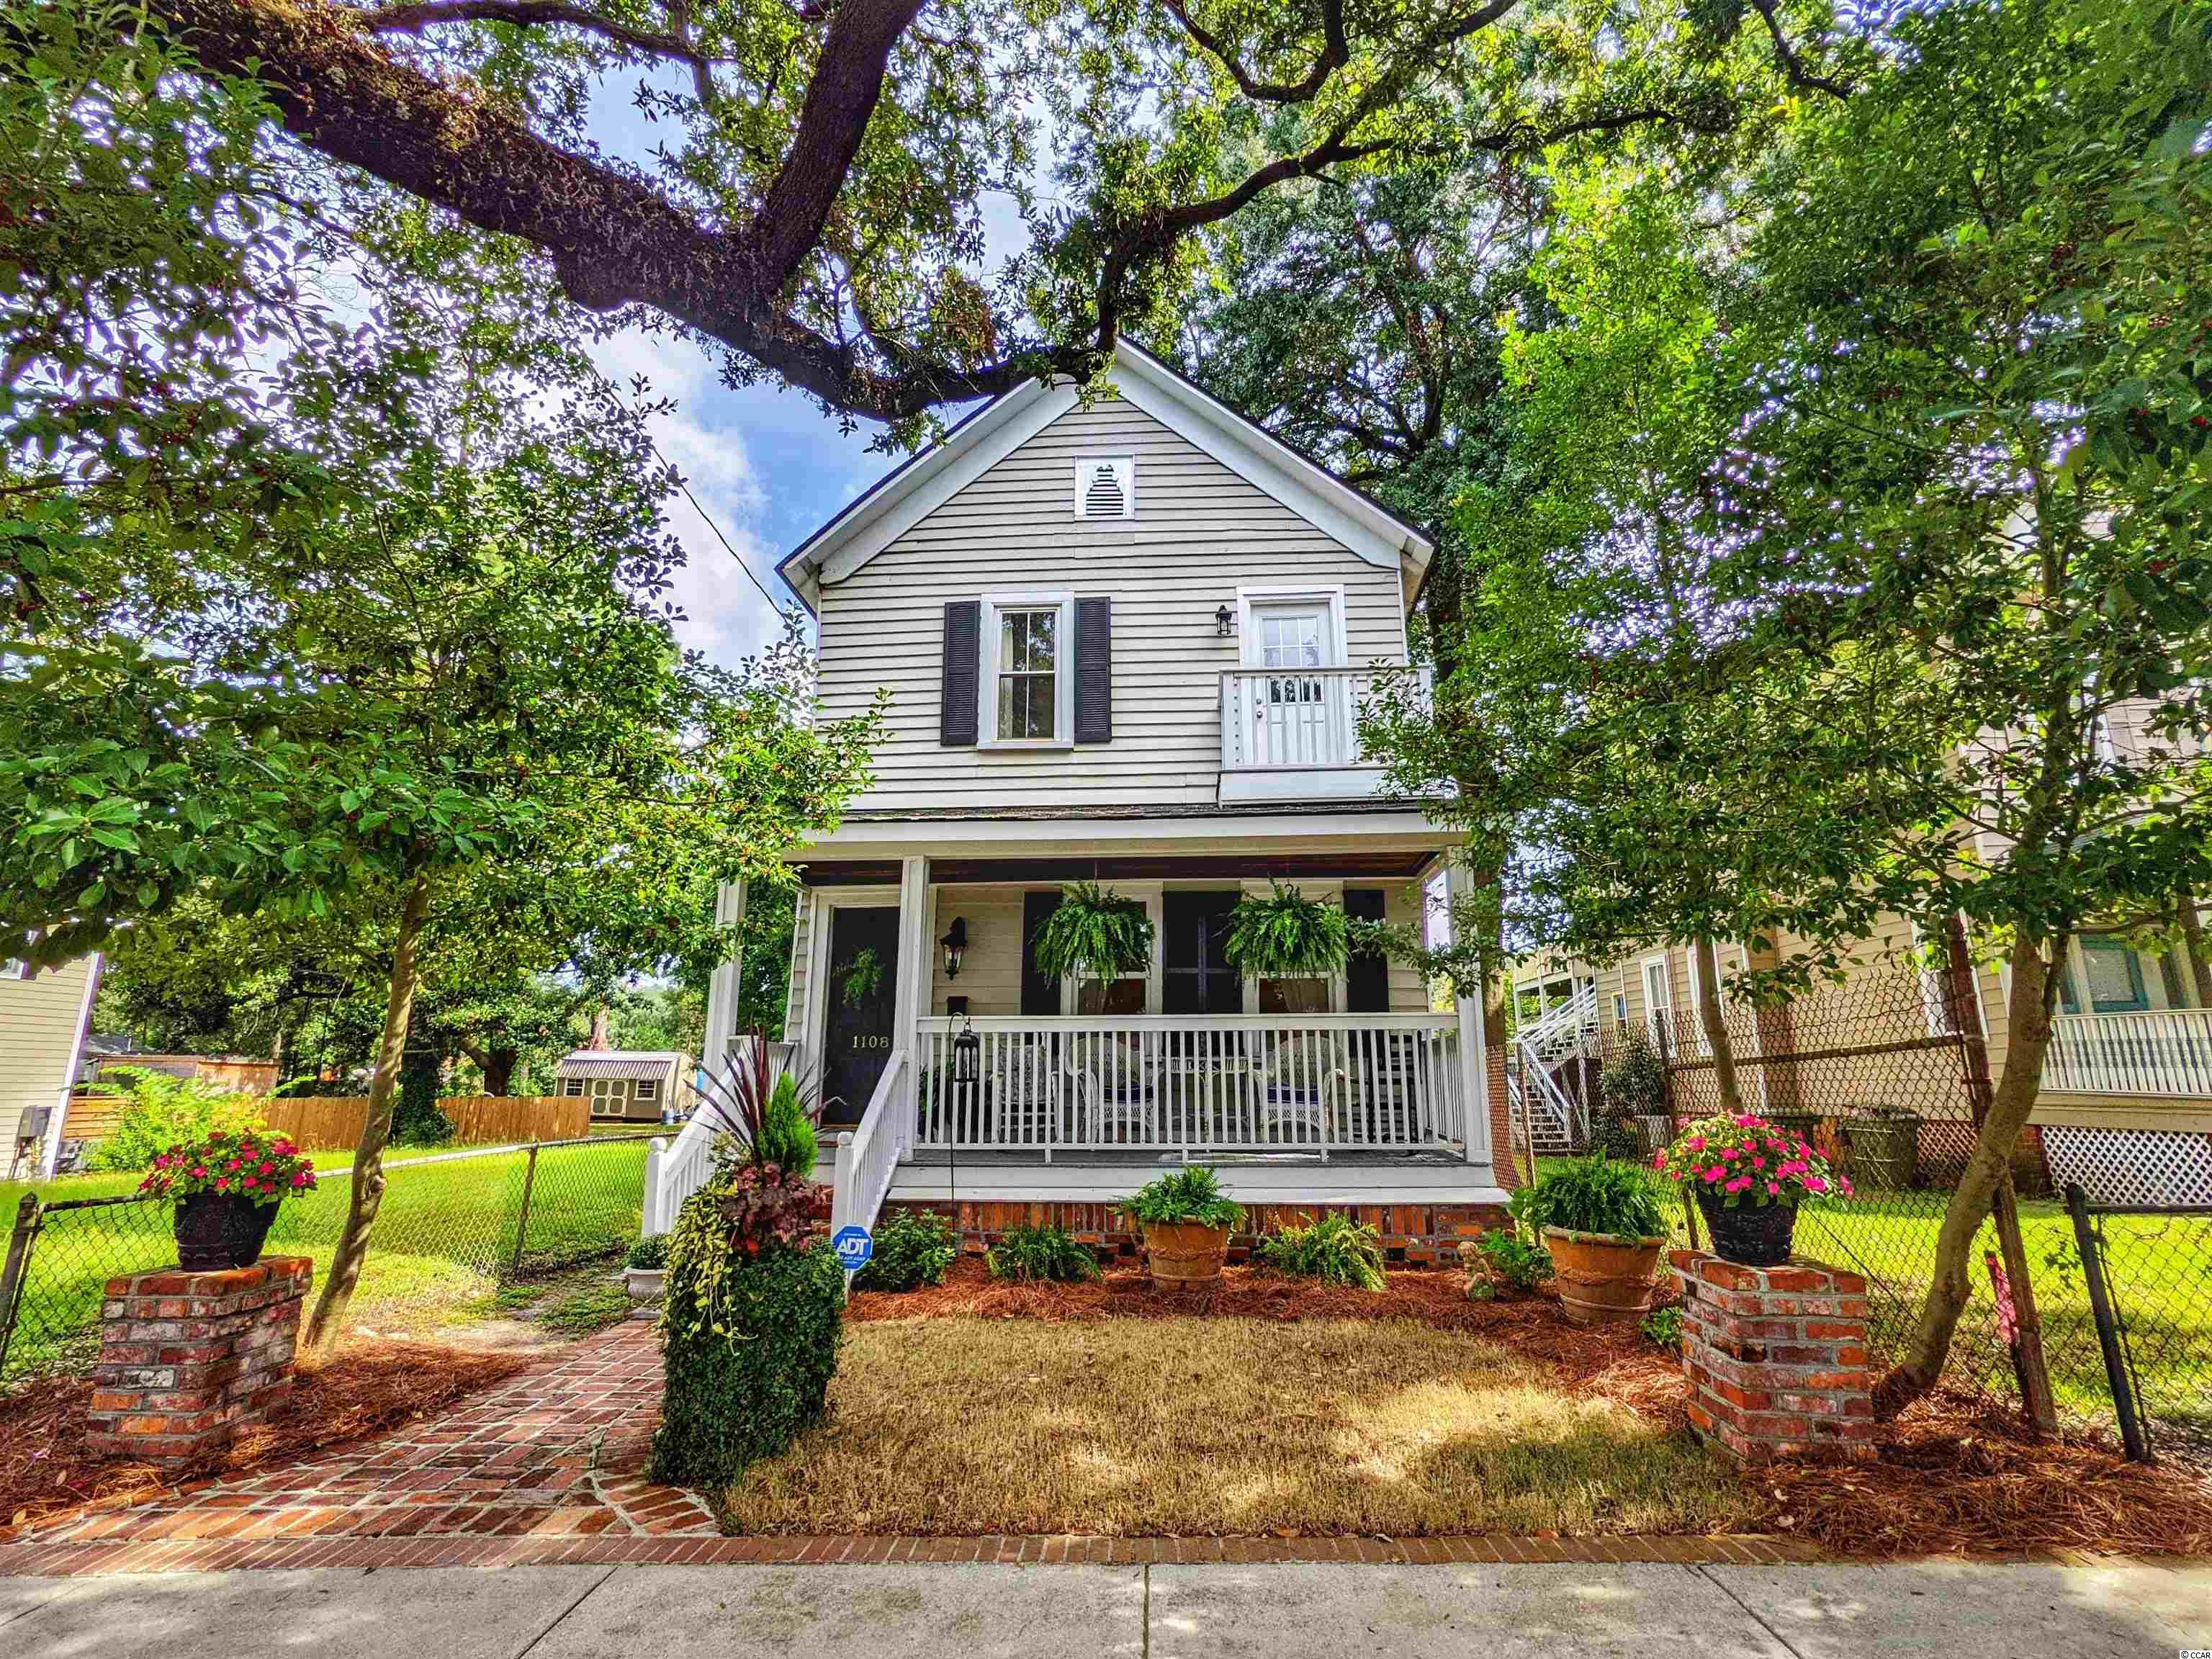 1108 Front St. Georgetown, SC 29440